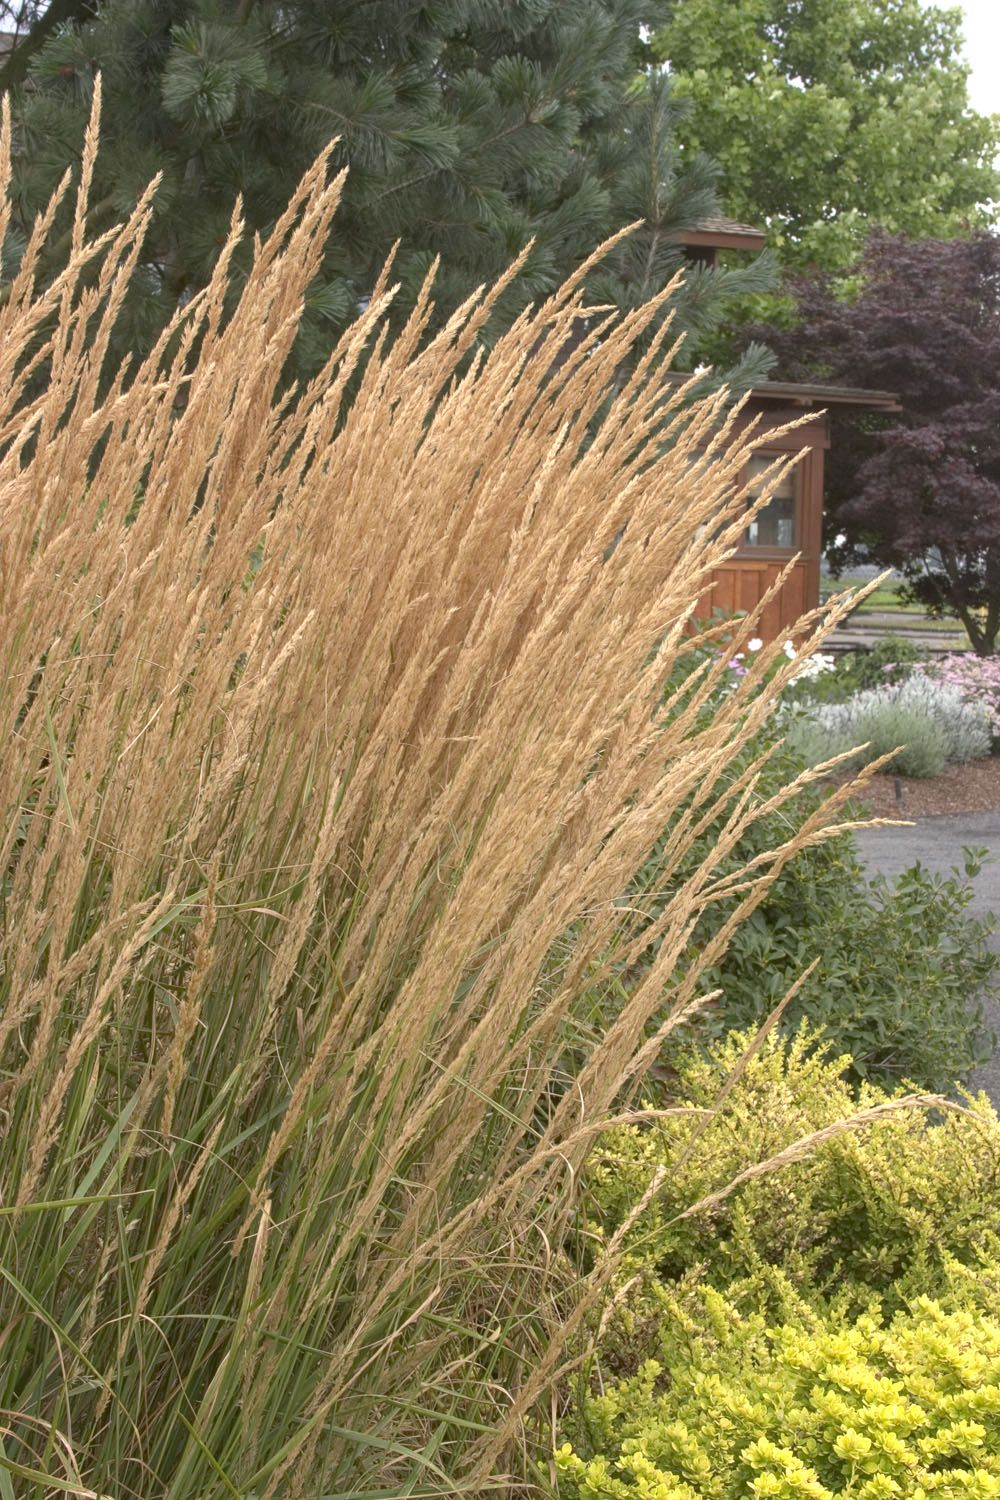 Low Growing Ornamental Grass Obsession falls golden grasses feather reed grass grasses and foersters feather reed grass is a low growing ornamental grass stars feathery flower spikes that emerge workwithnaturefo